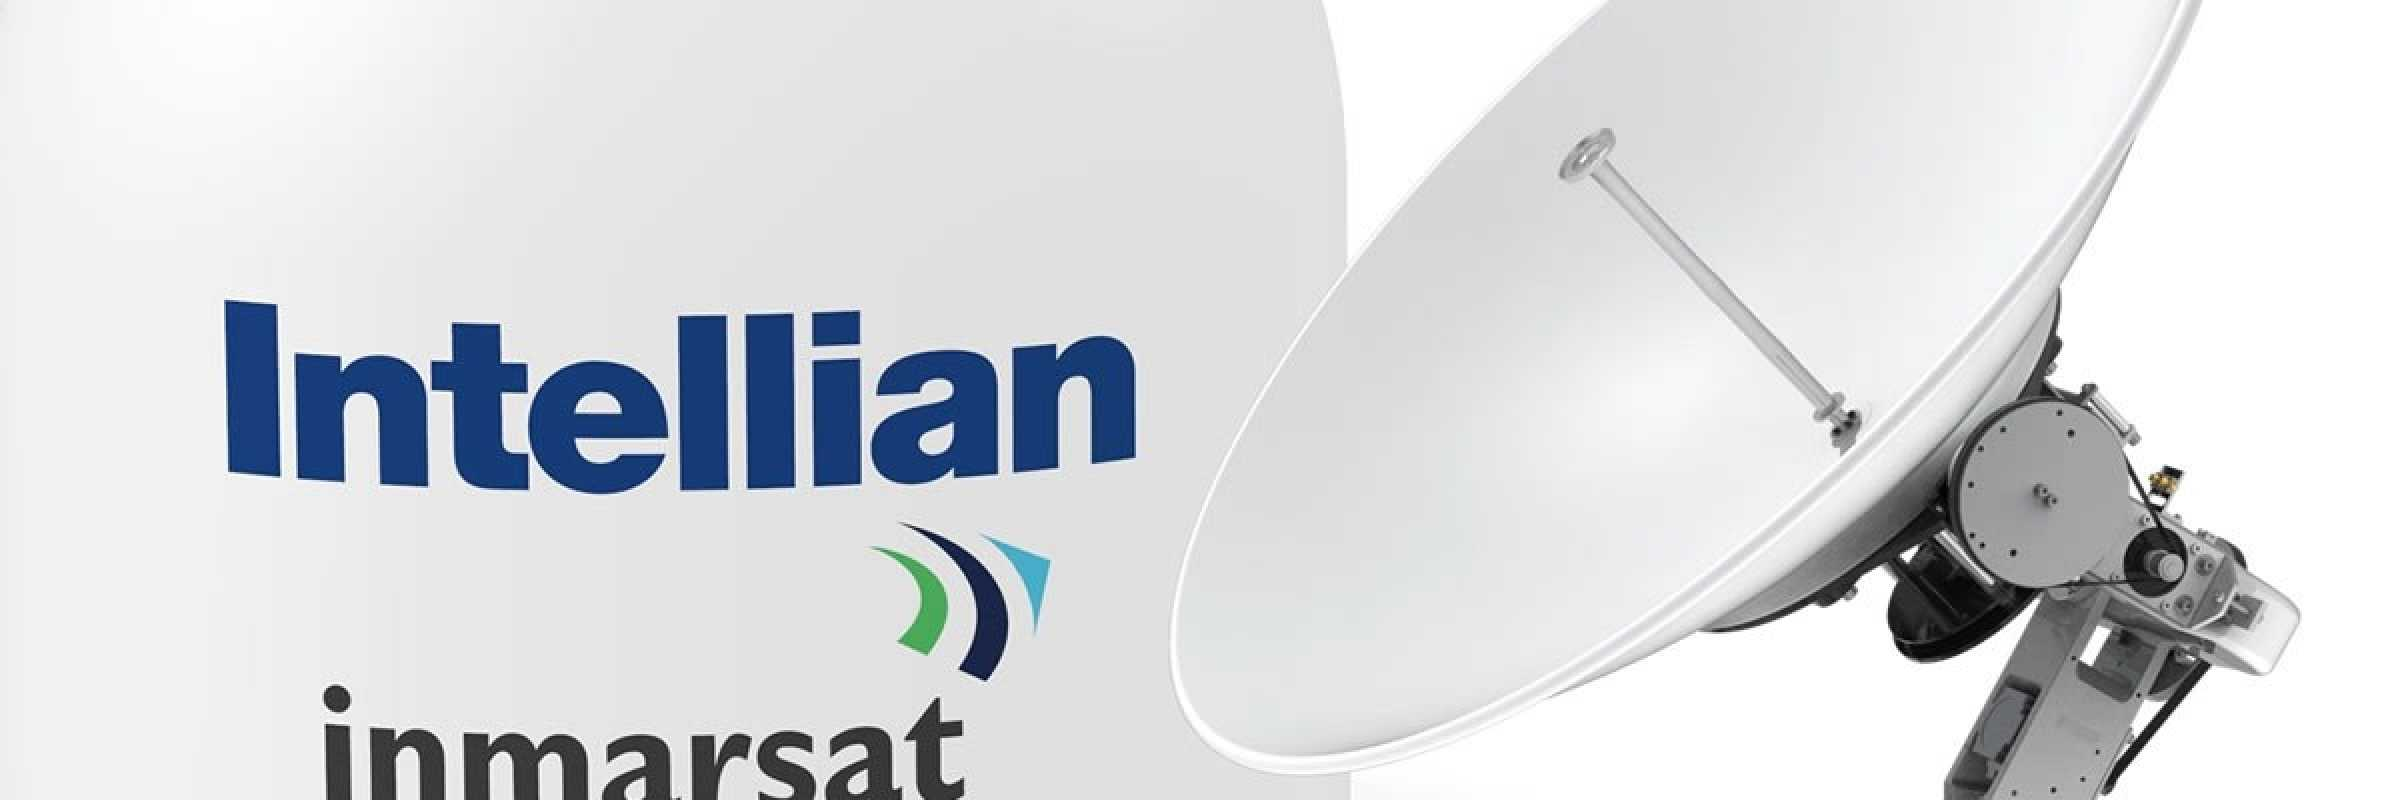 Intellian GX100NX antenna approved by Inmarsat